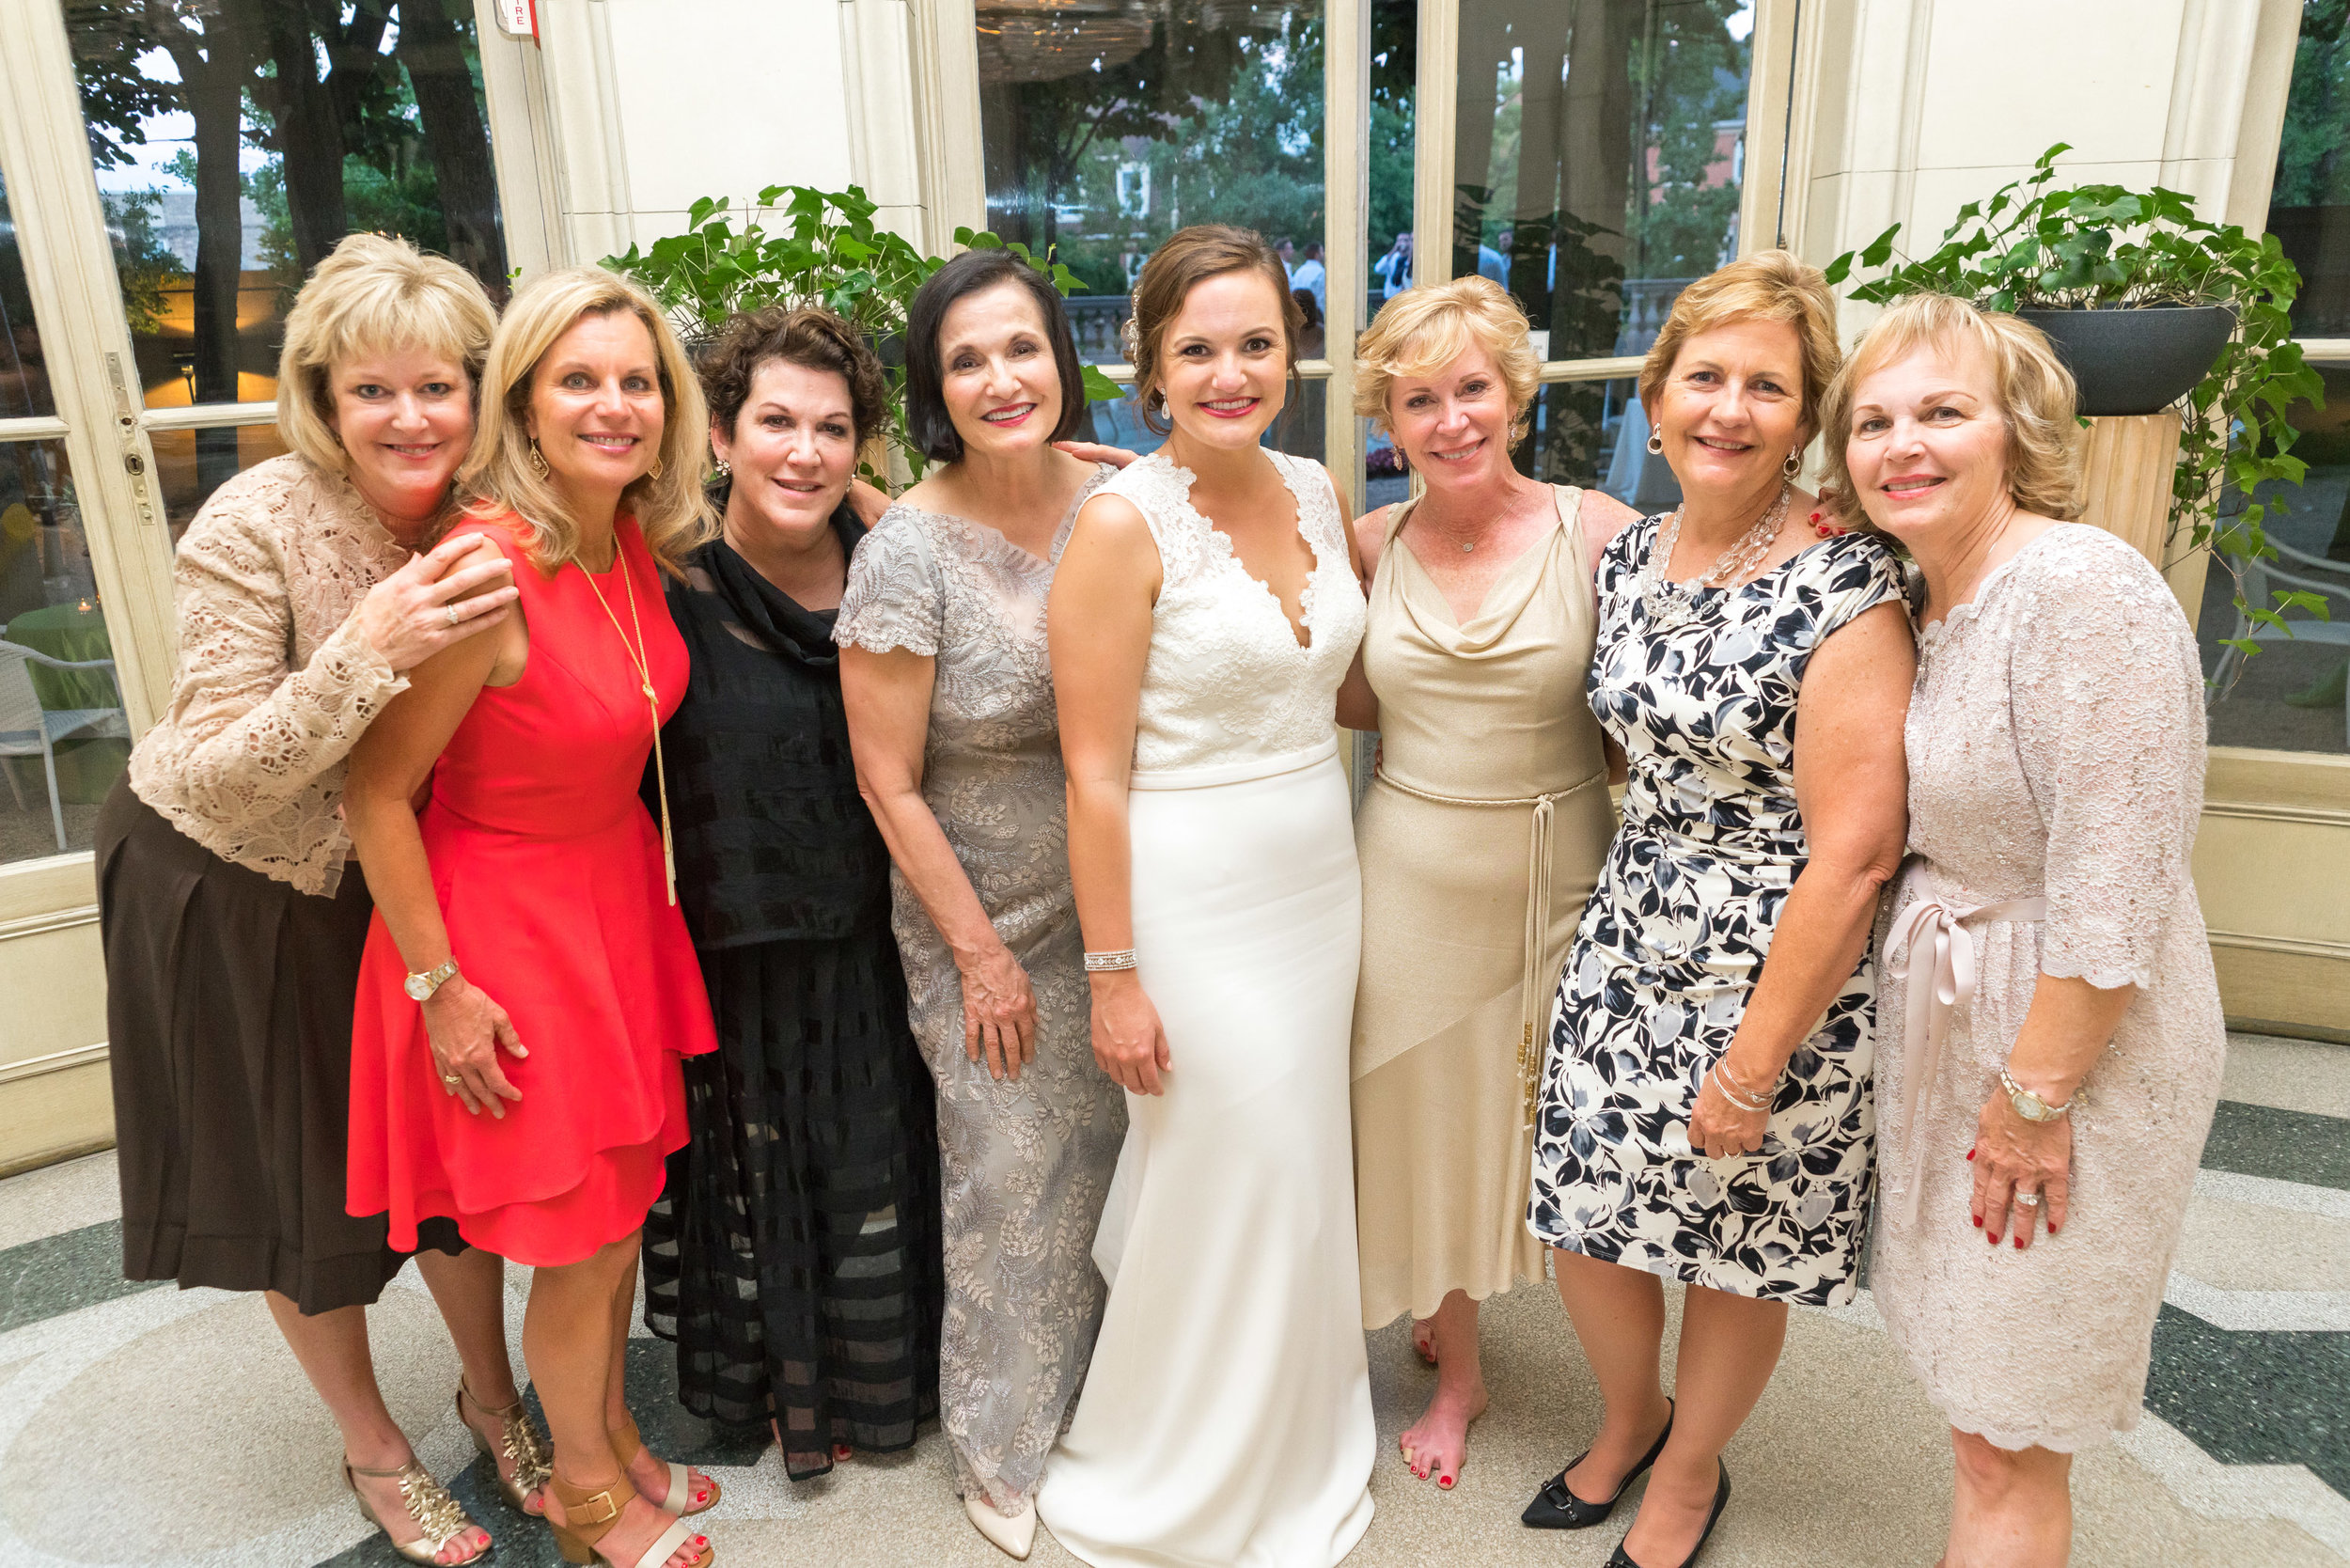 Wedding reception at meridian house